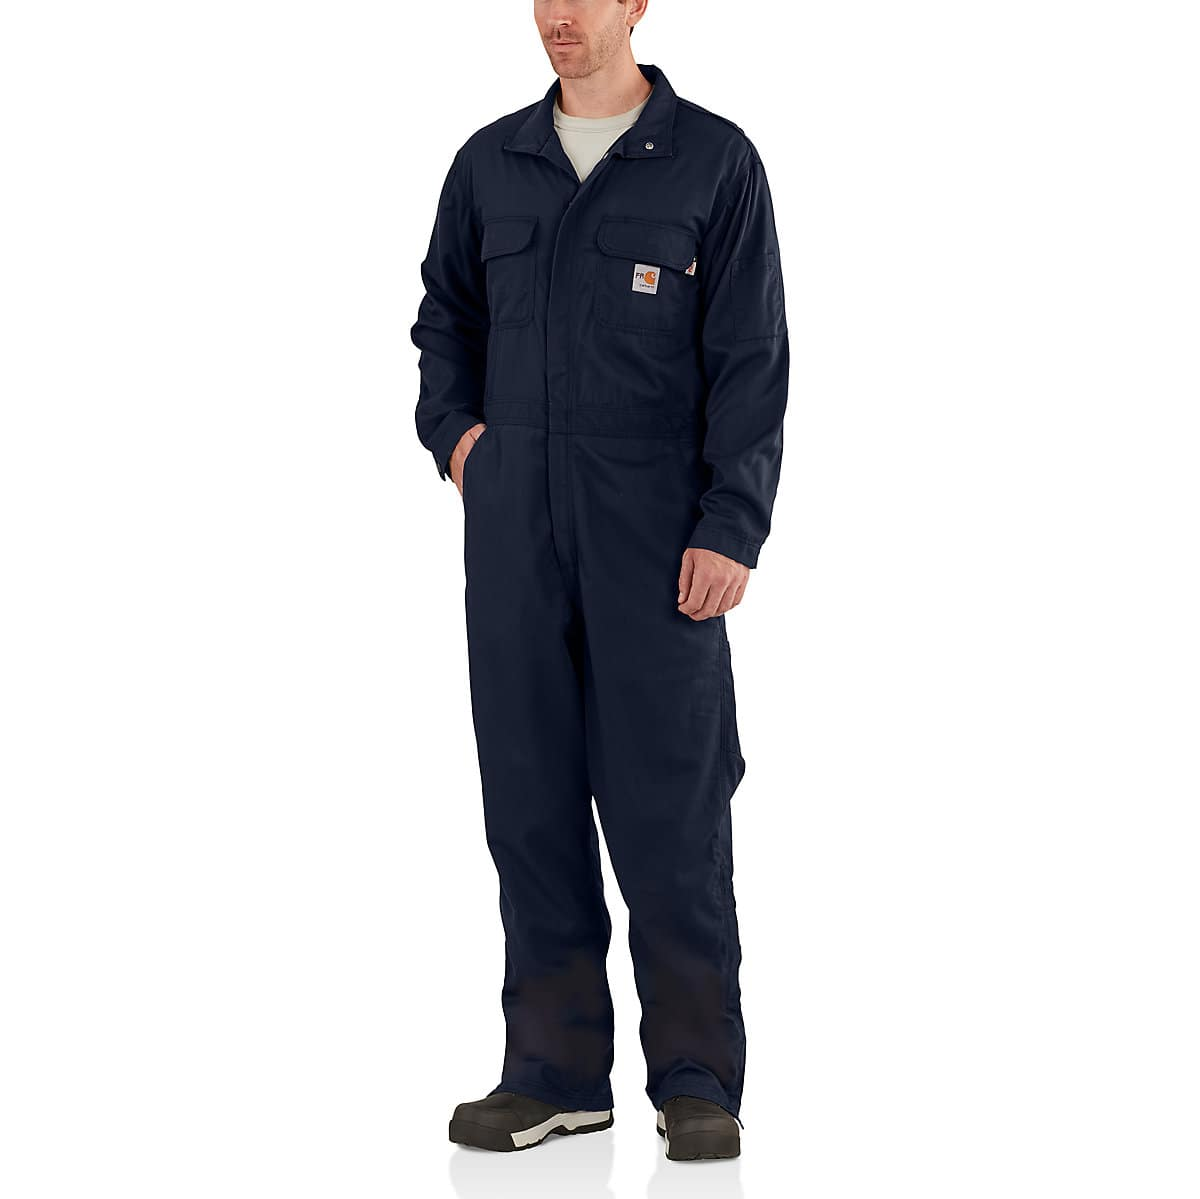 9605123f0e07 Men s Flame-Resistant Deluxe Coverall 102150